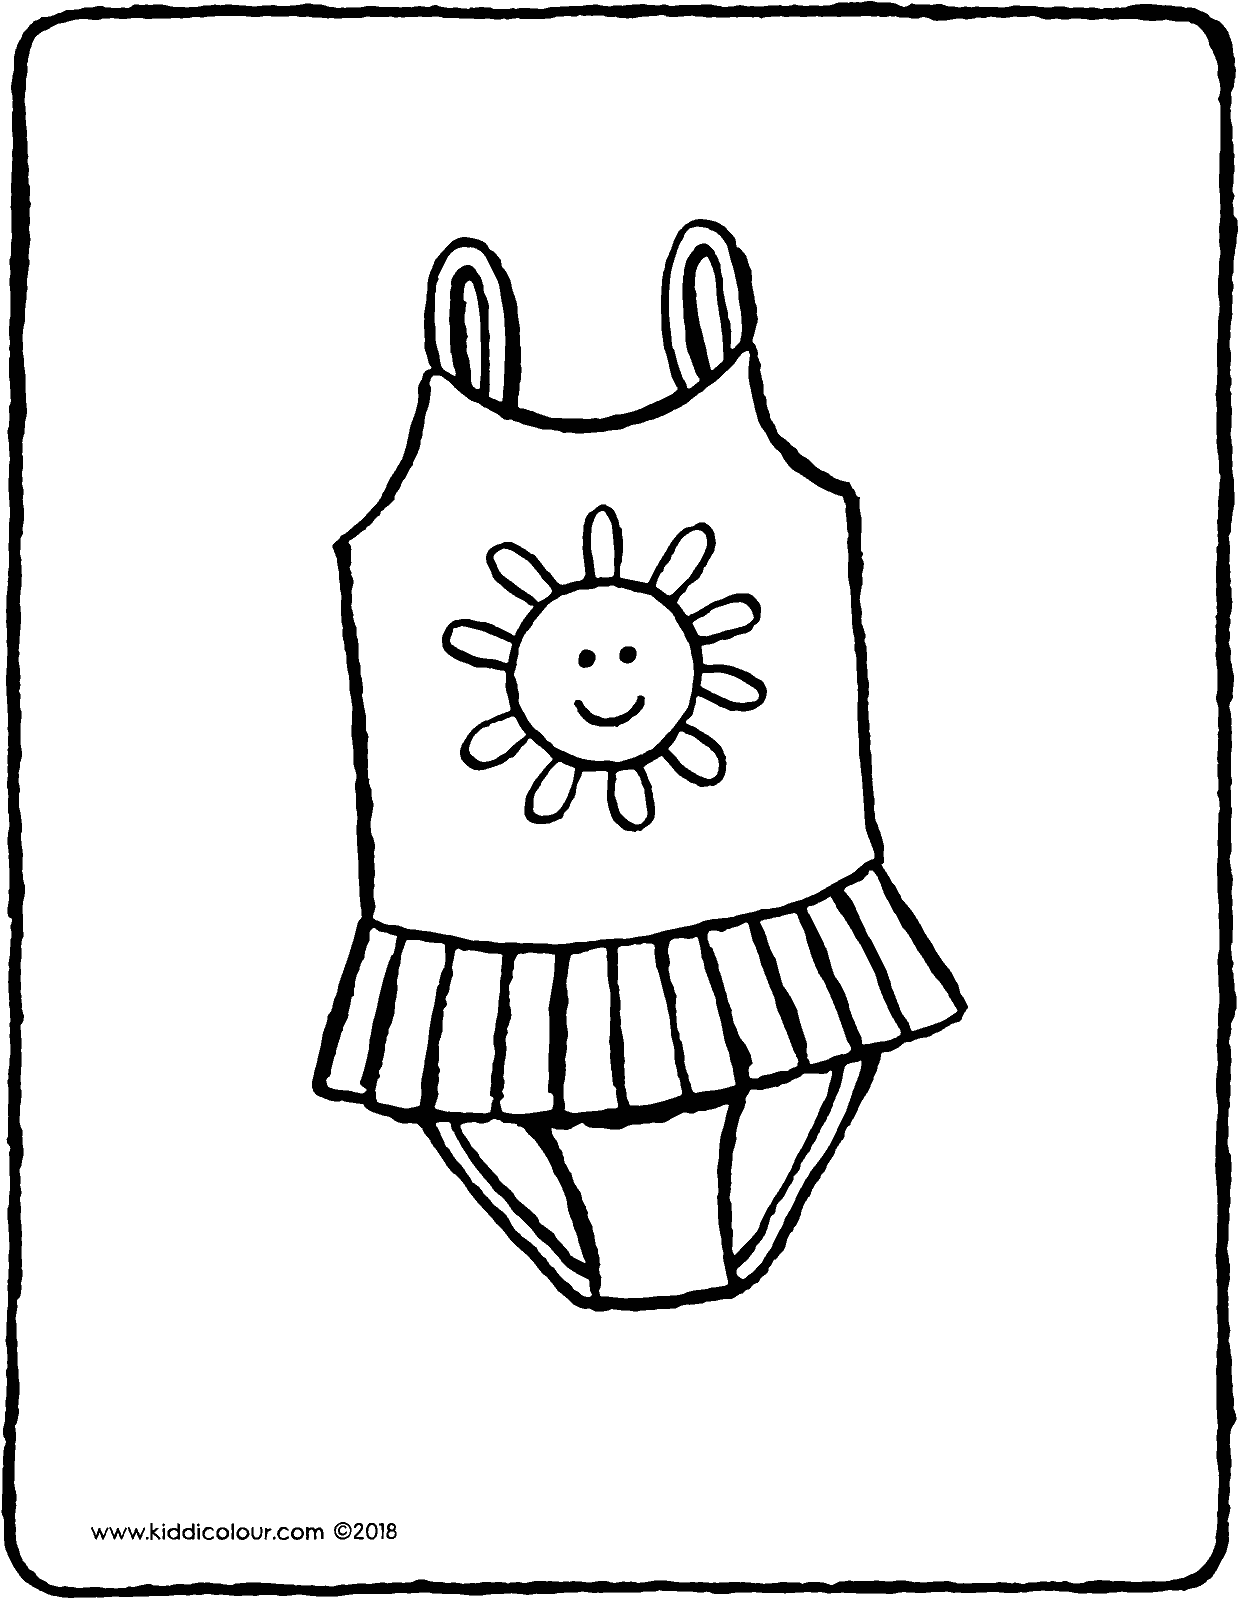 swimsuit kiddicolour